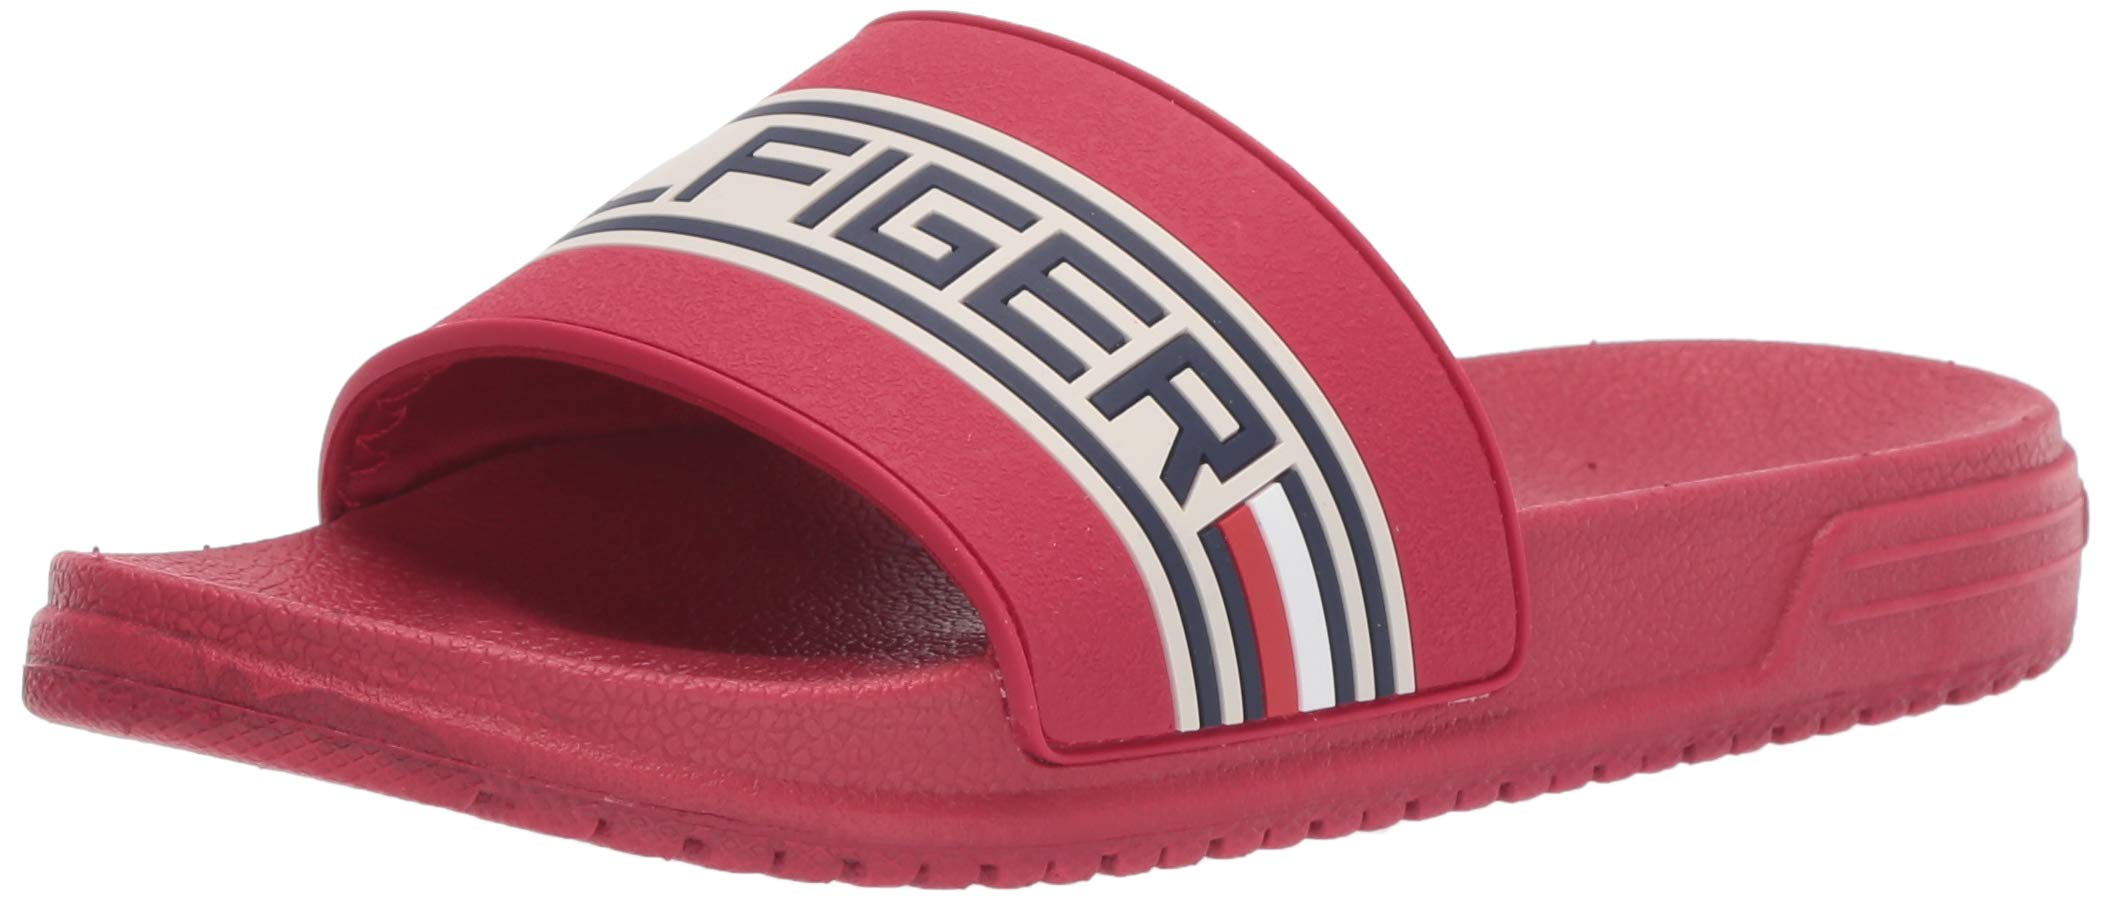 Tommy Hilfiger Unisex Kids' Geo Logo Slide Athletic Sandal, Tommy red, 12 Medium US Little